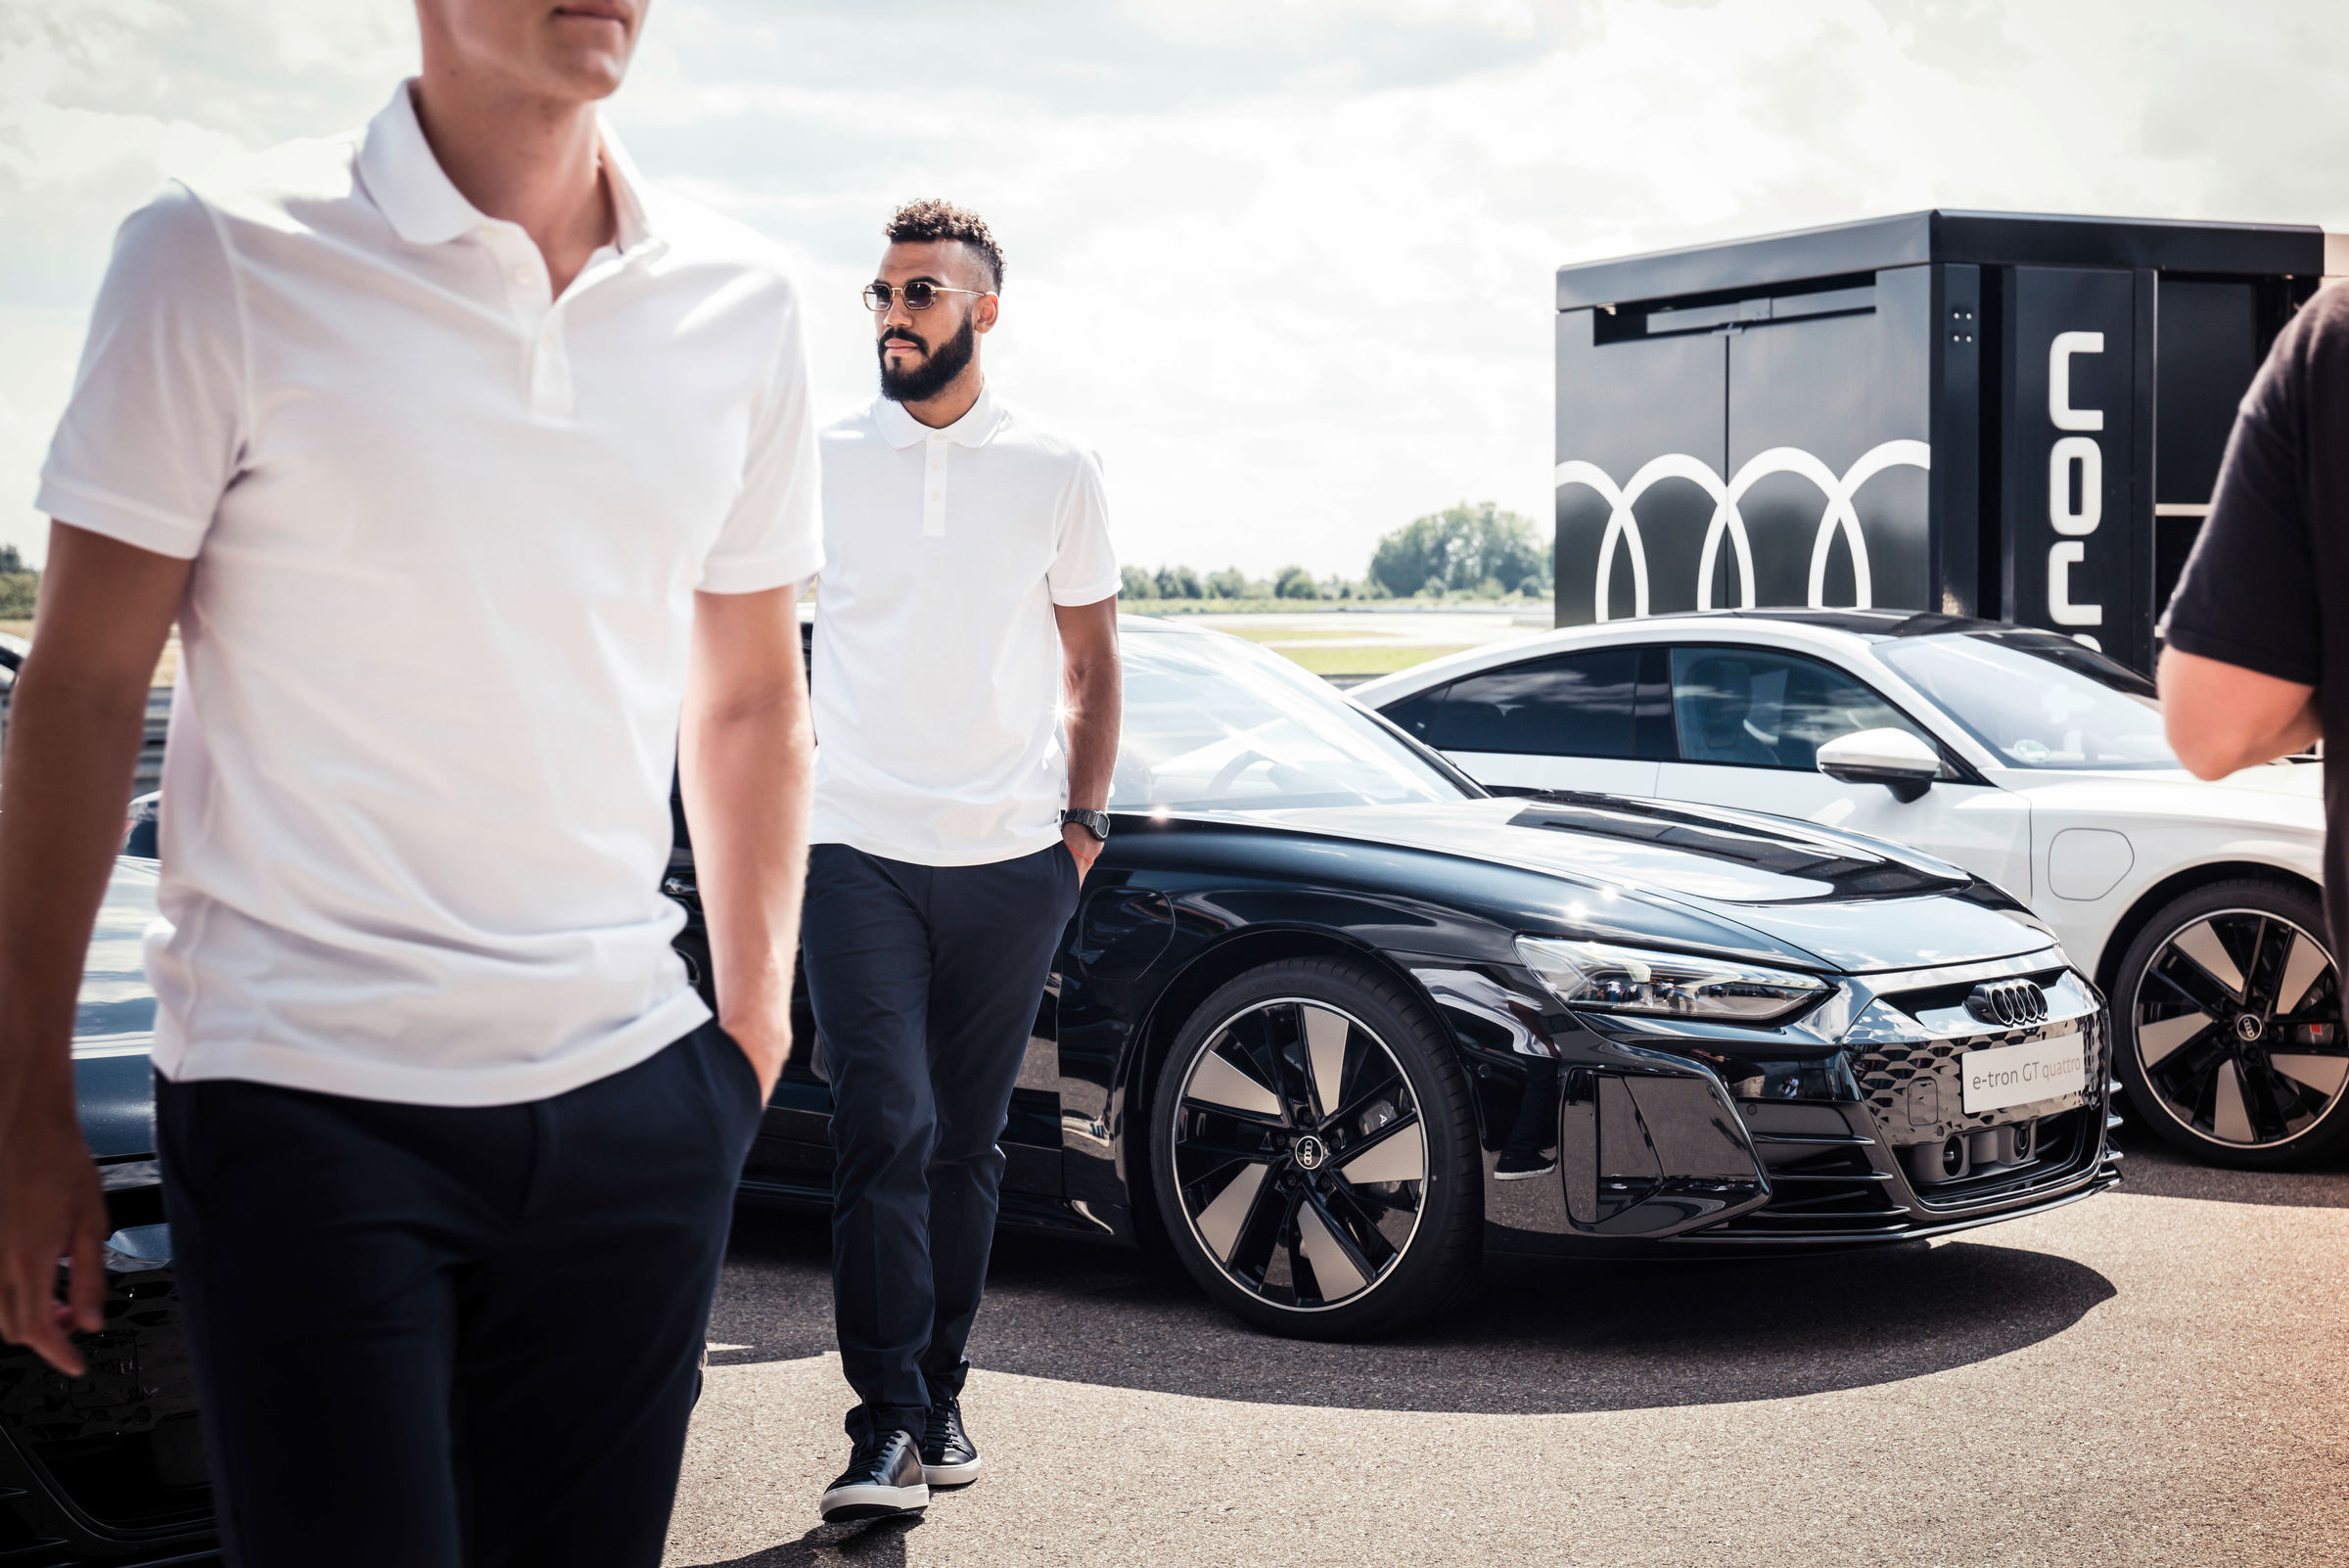 Electrification 2.0: pros from FC Bayern receive Audi e-tron GT - Image 4